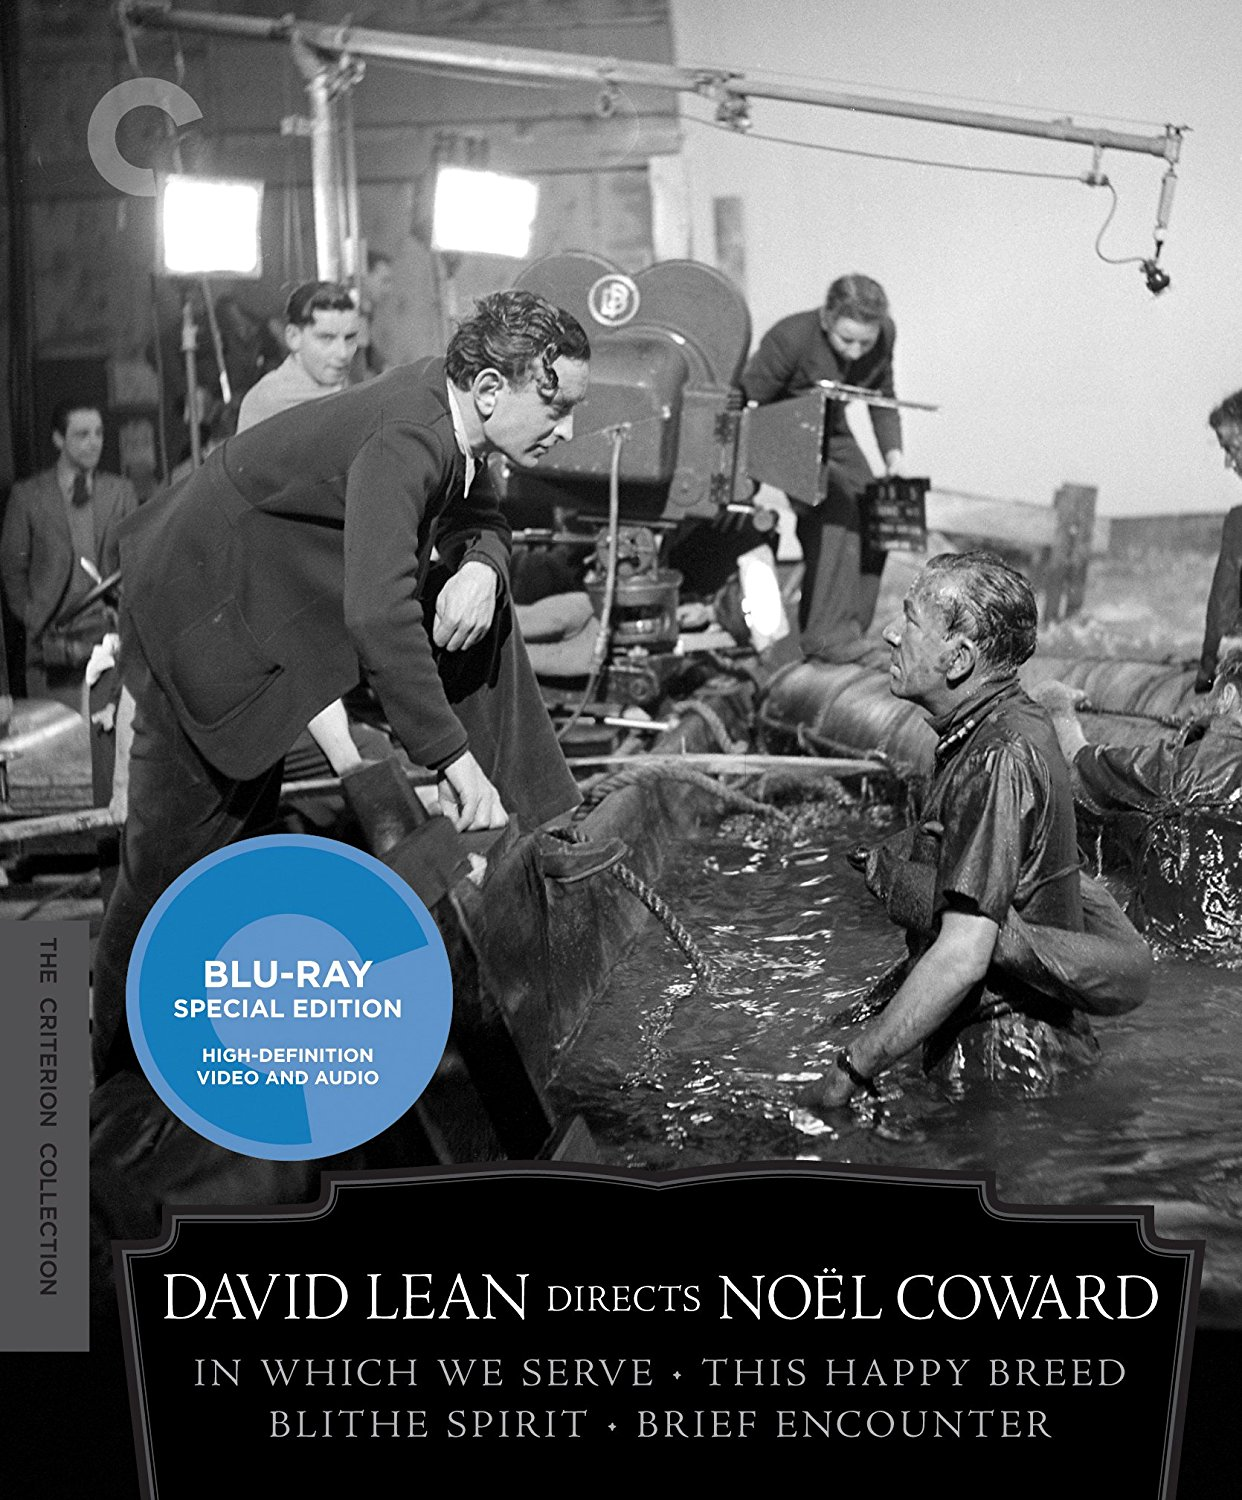 THE FILM PATROL: From my archives: 'David Lean directs Noel Coward'